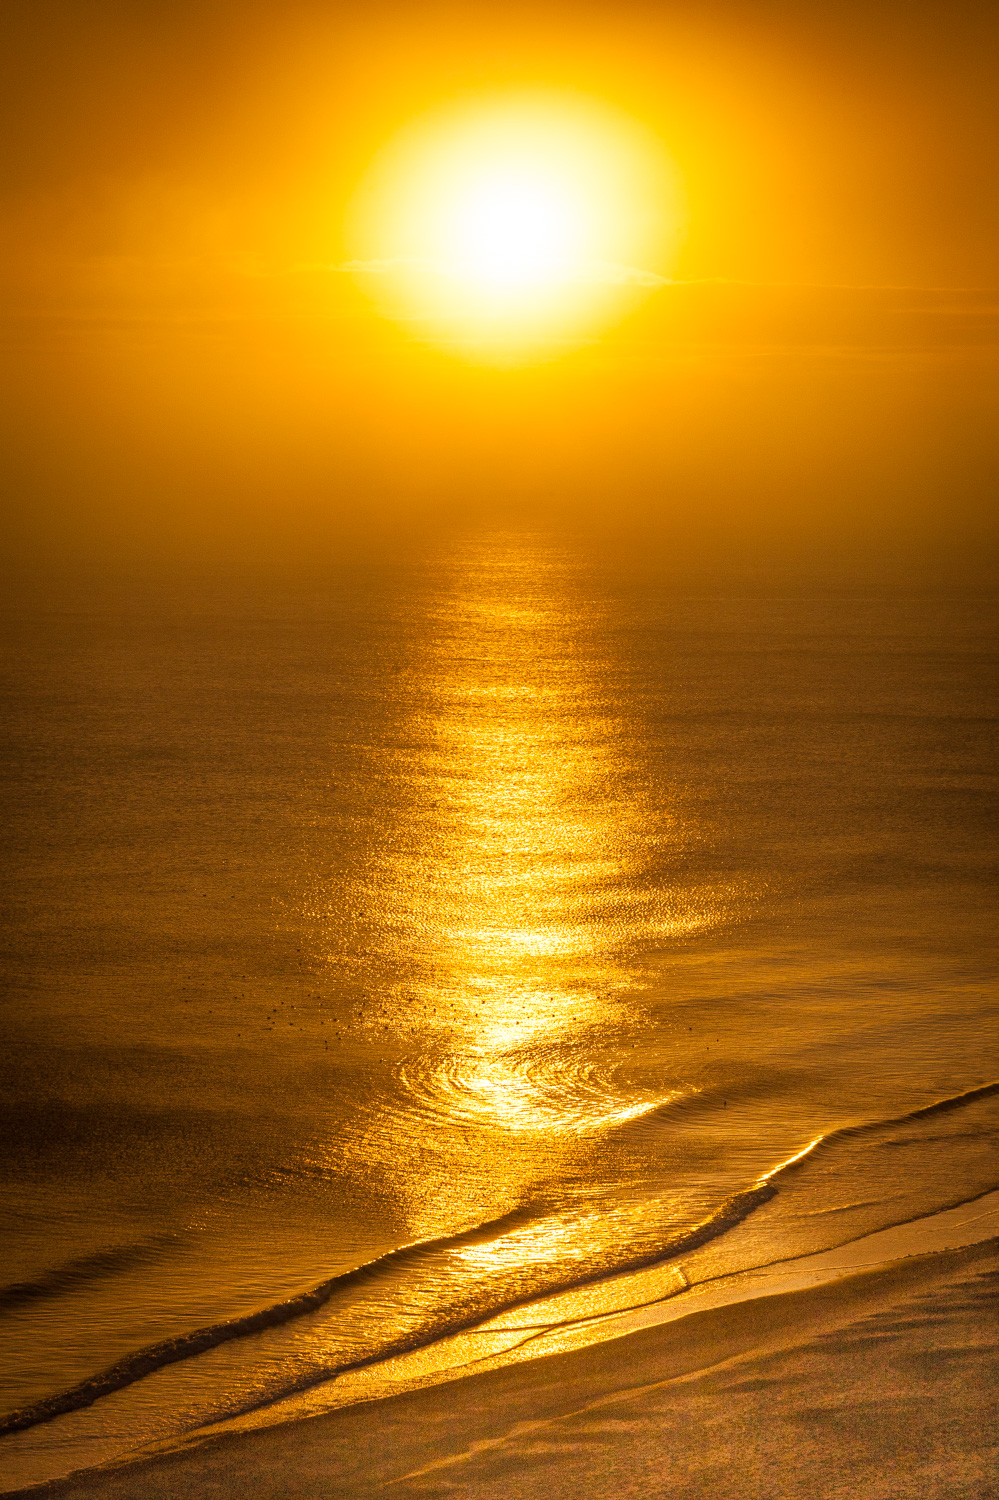 Sun and waves by Rick McEvoy Bournemouth Photographer